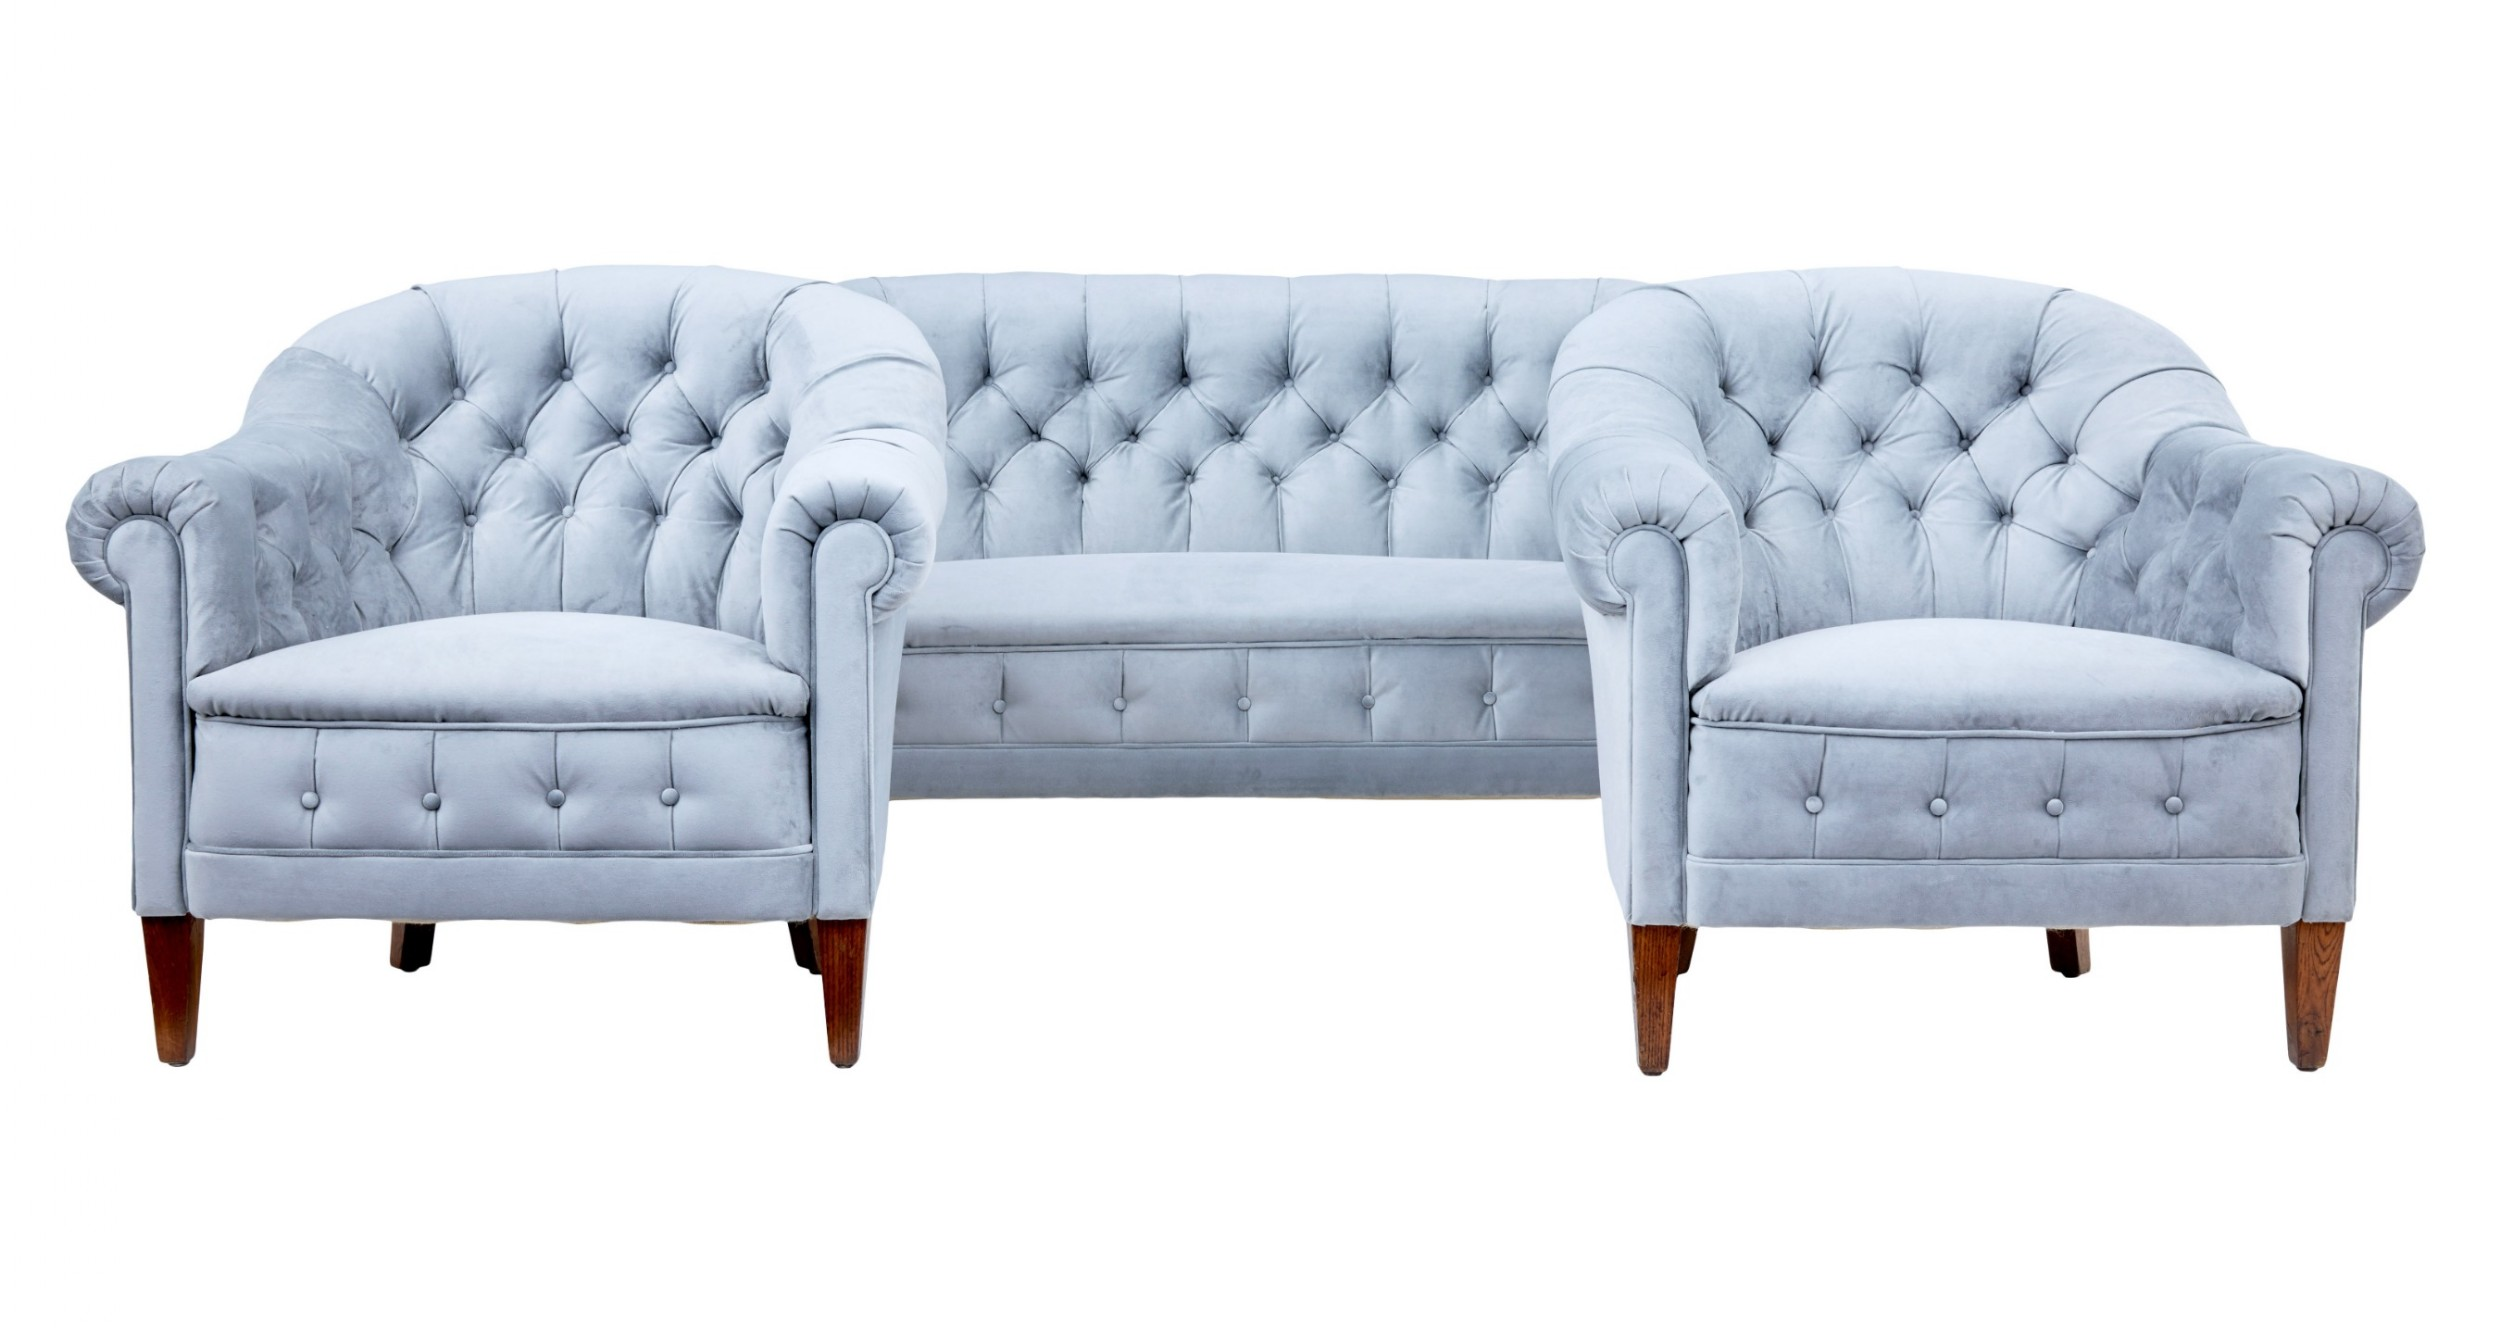 early 20th century buttonback 3 piece suite sofa and 2 chairs